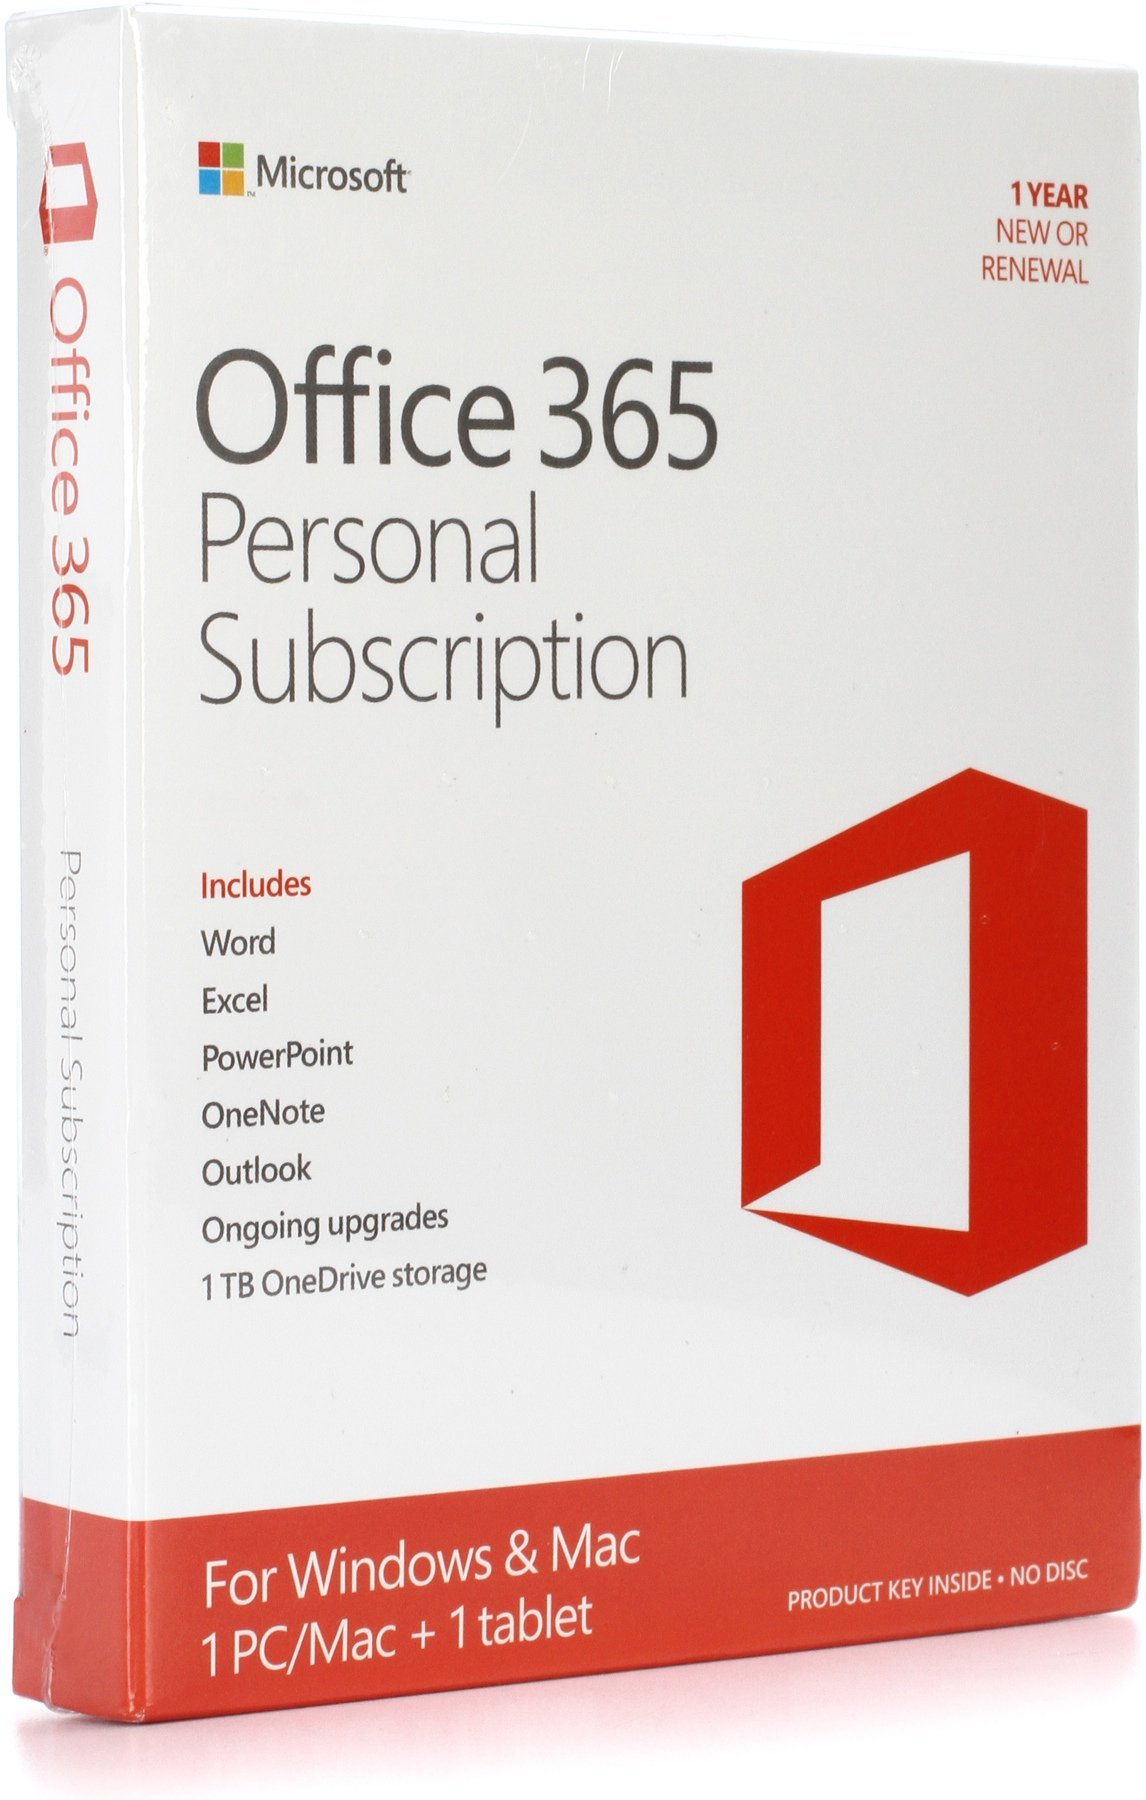 Magnificent Office 365 Home Personal Model - Home Decorating ...